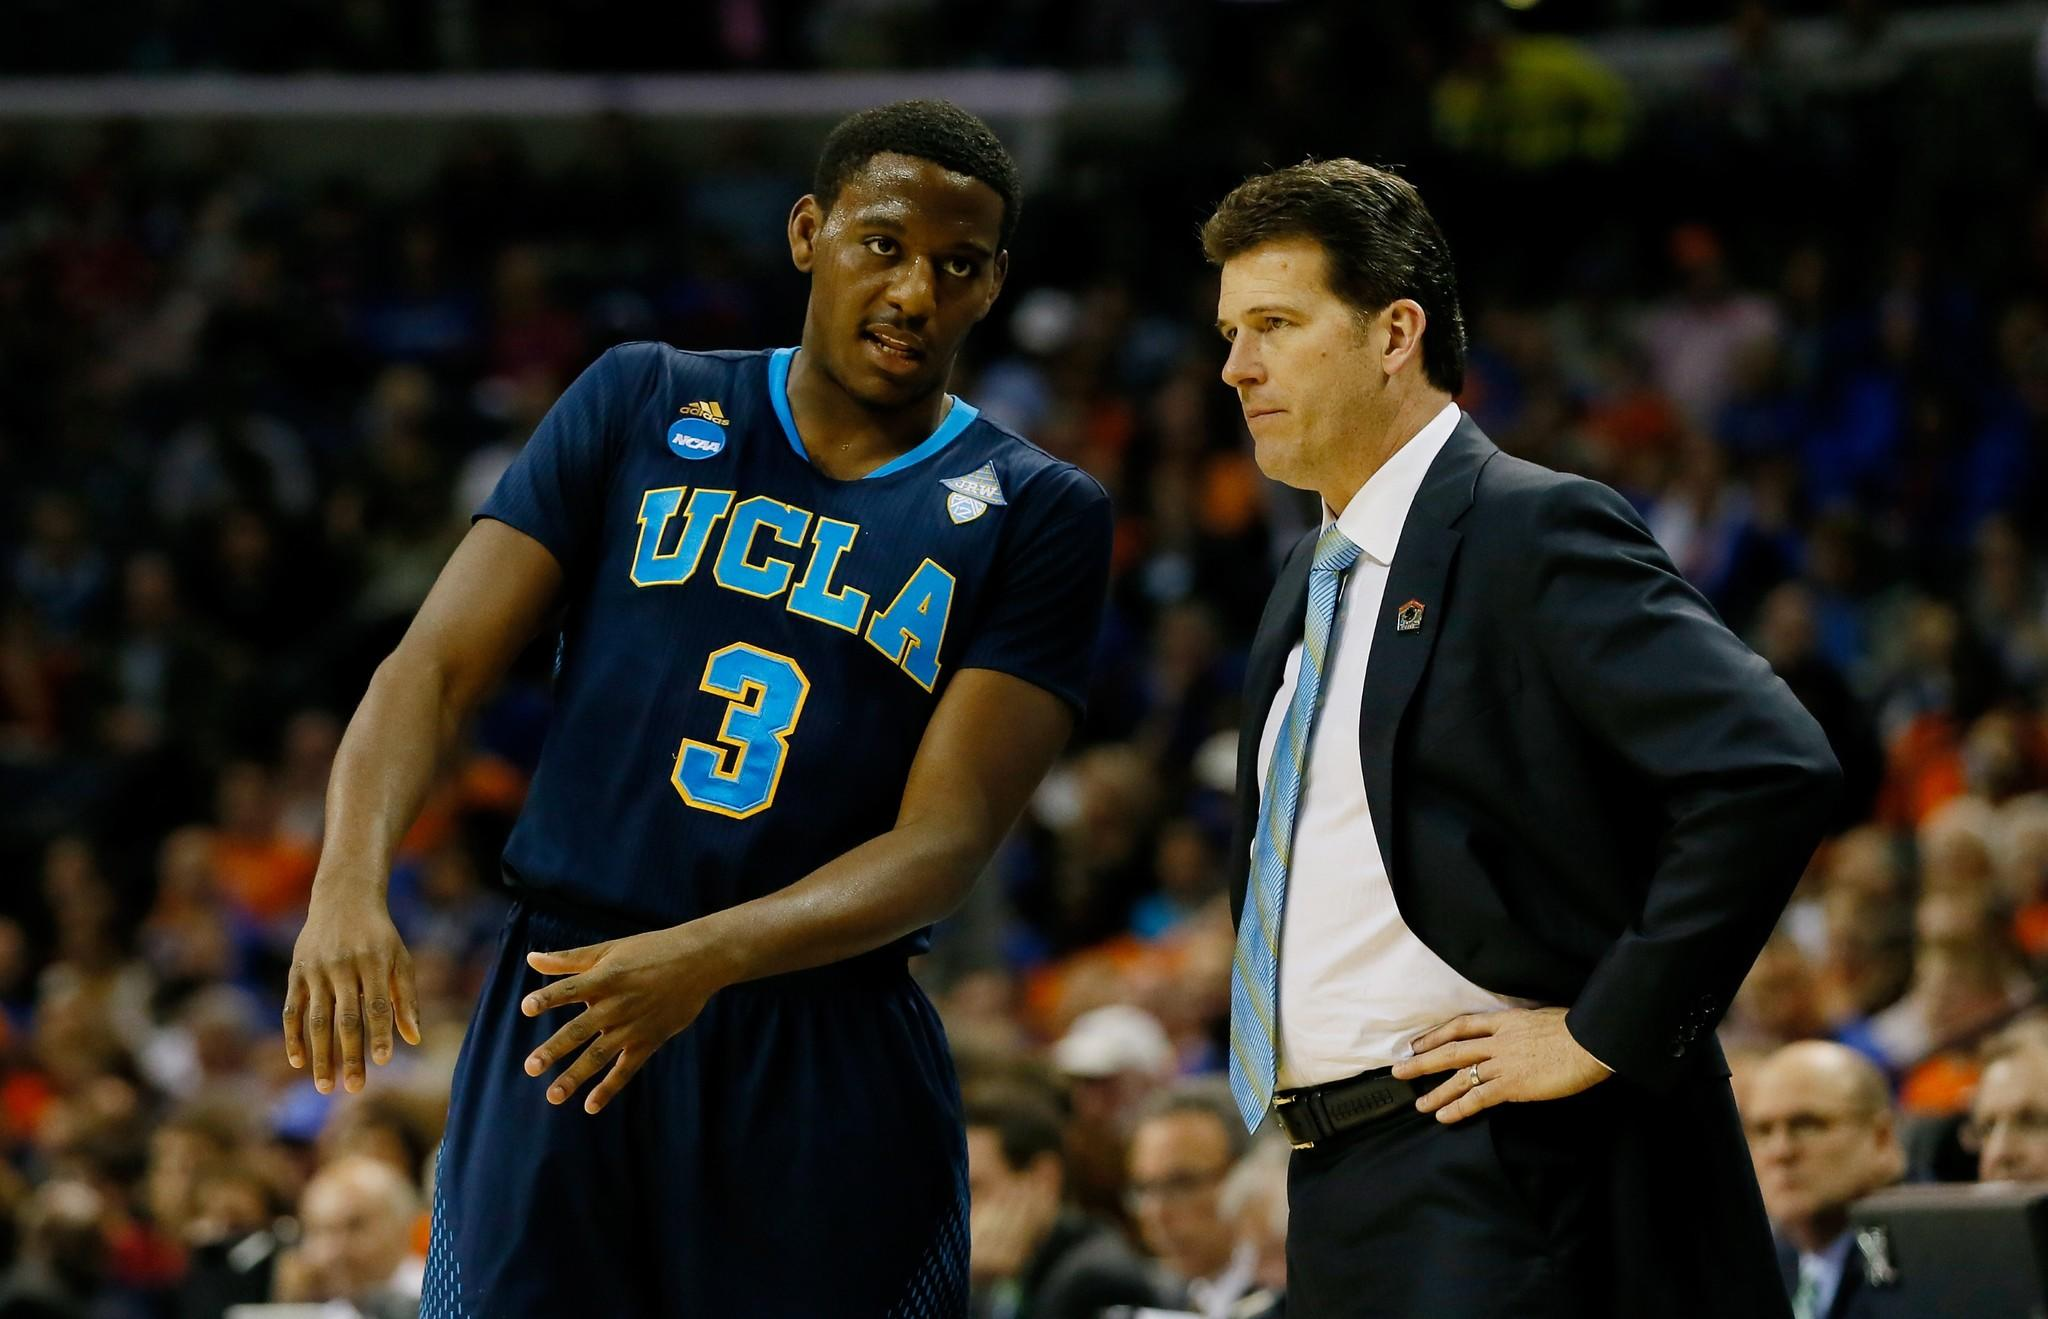 Jordan Adams will return to UCLA and Coach Steve Alford next season.